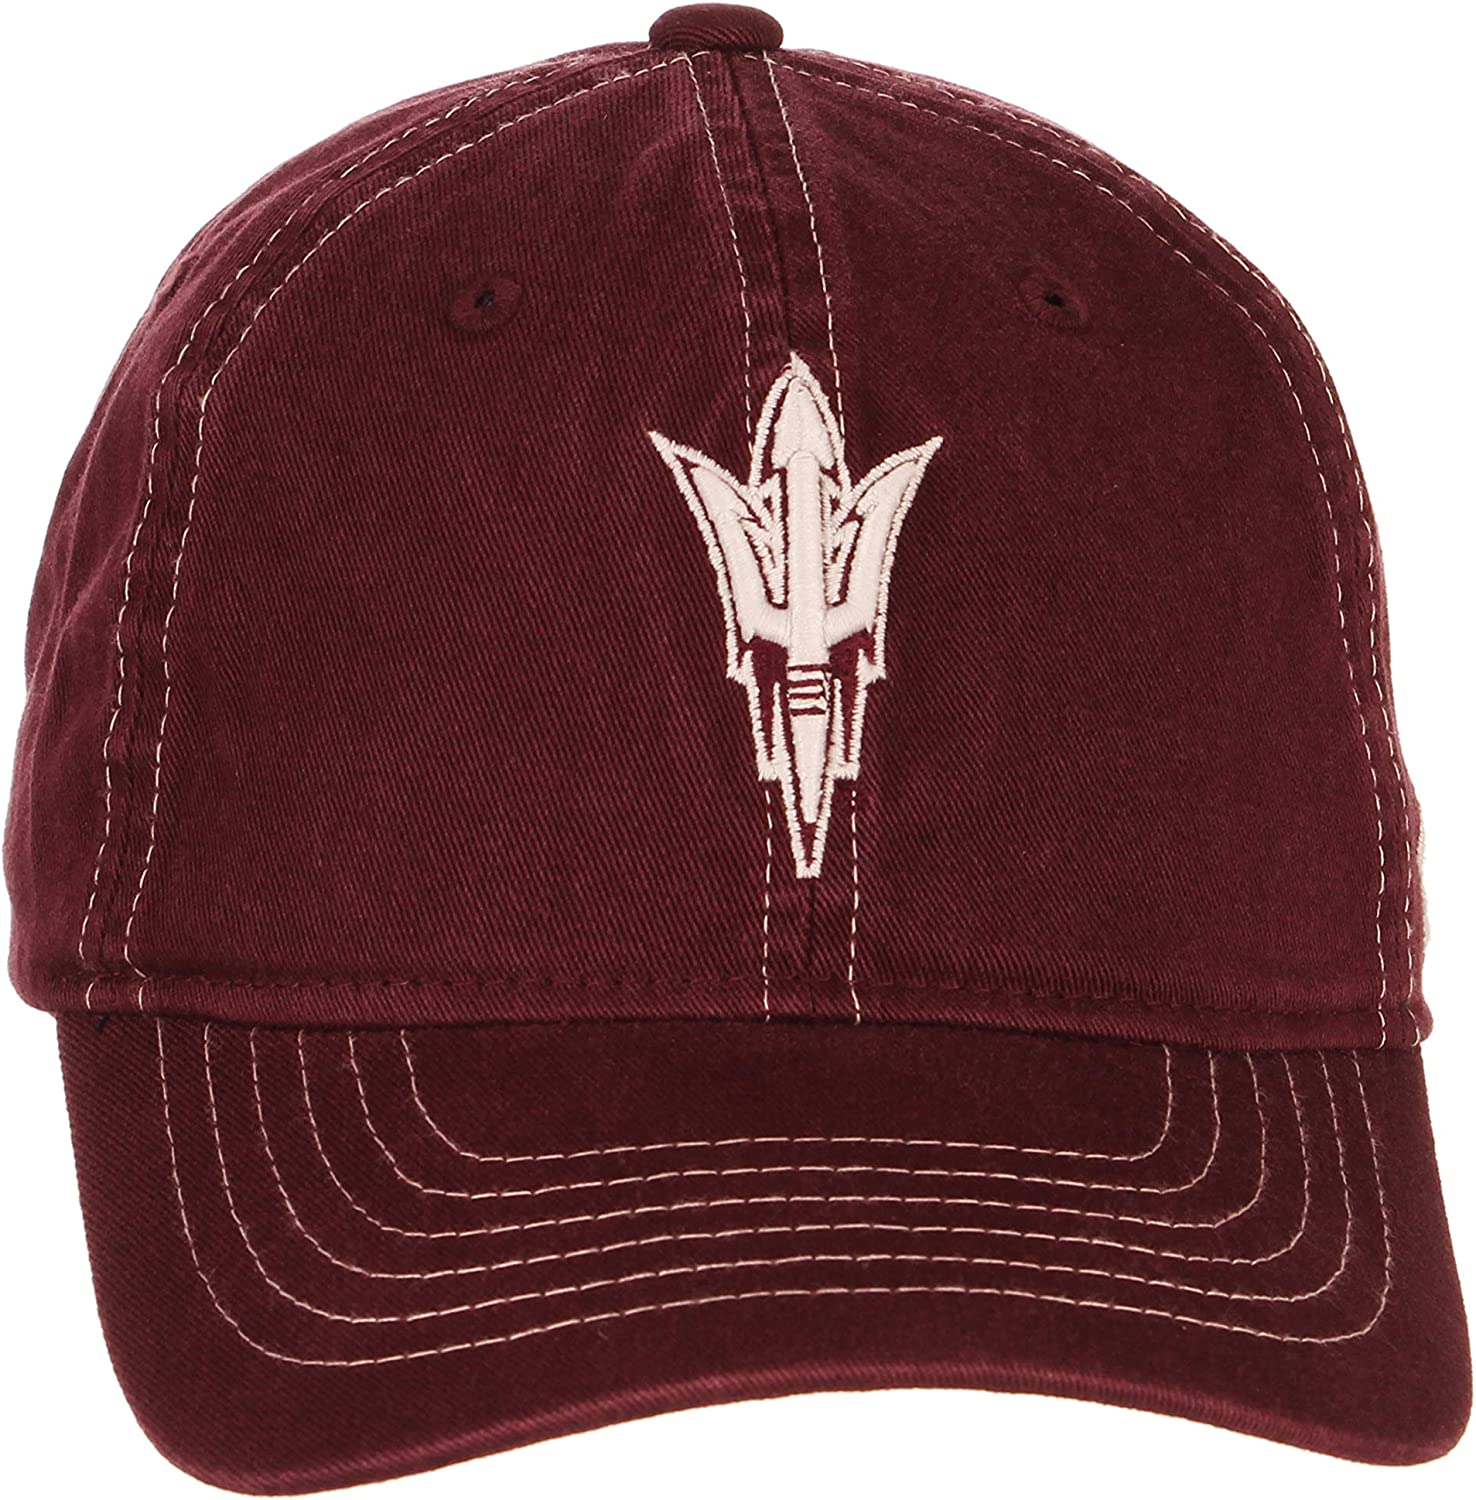 NCAA Zephyr Arizona State Sun Devils Mens Solo Washed Cotton Relaxed Hat Primary Team Color Adjustable